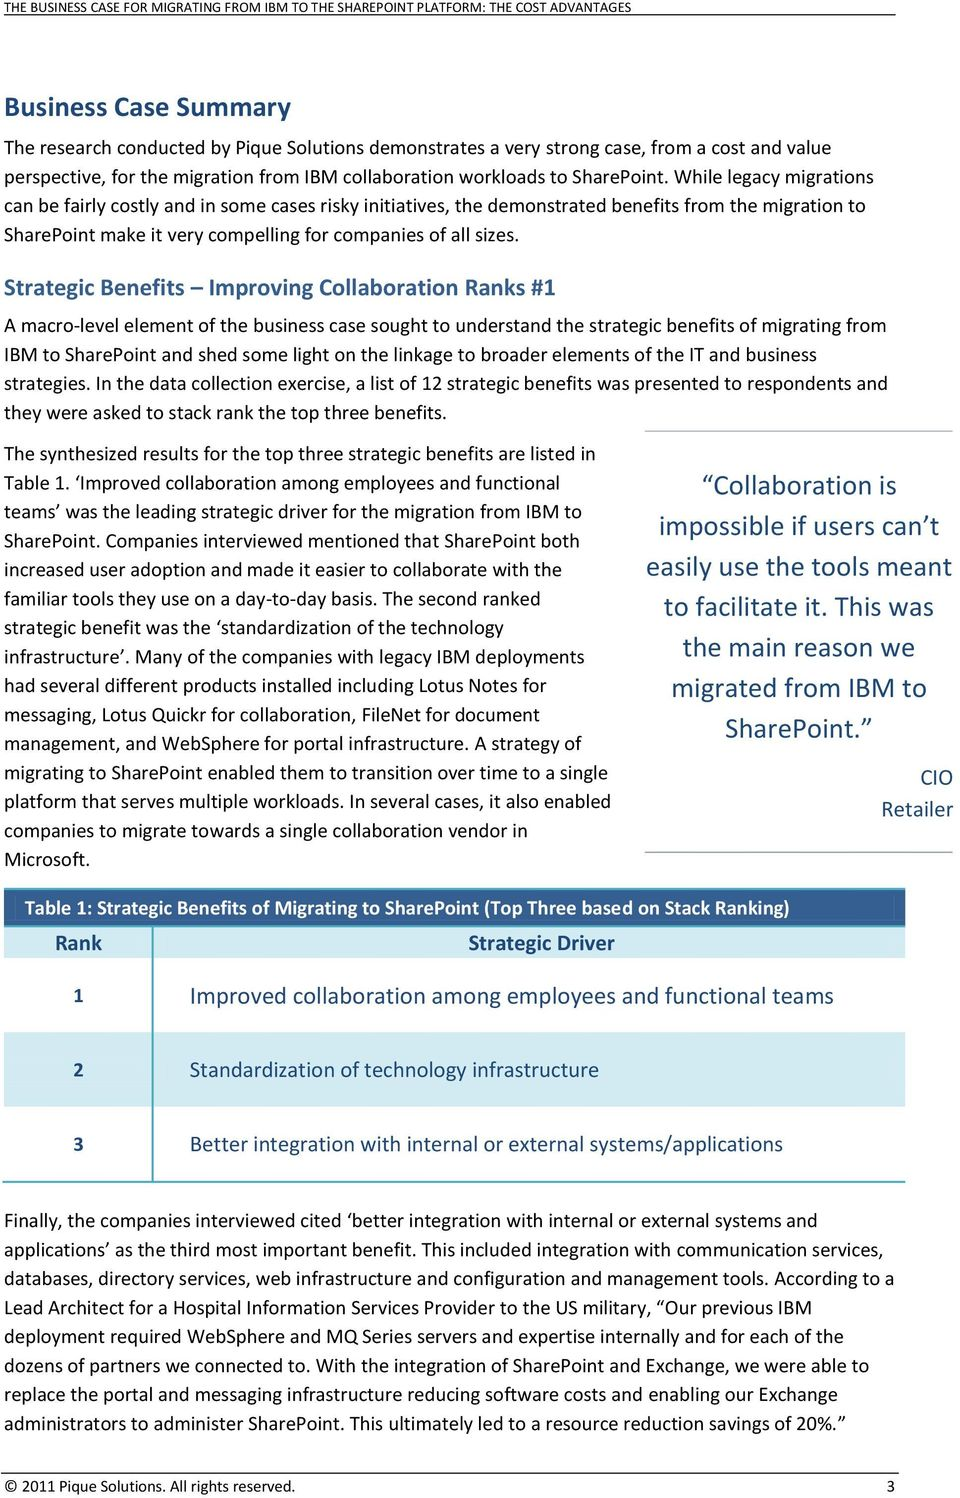 Strategic Benefits Improving Collaboration Ranks #1 A macro-level element of the business case sought to understand the strategic benefits of migrating from IBM to SharePoint and shed some light on